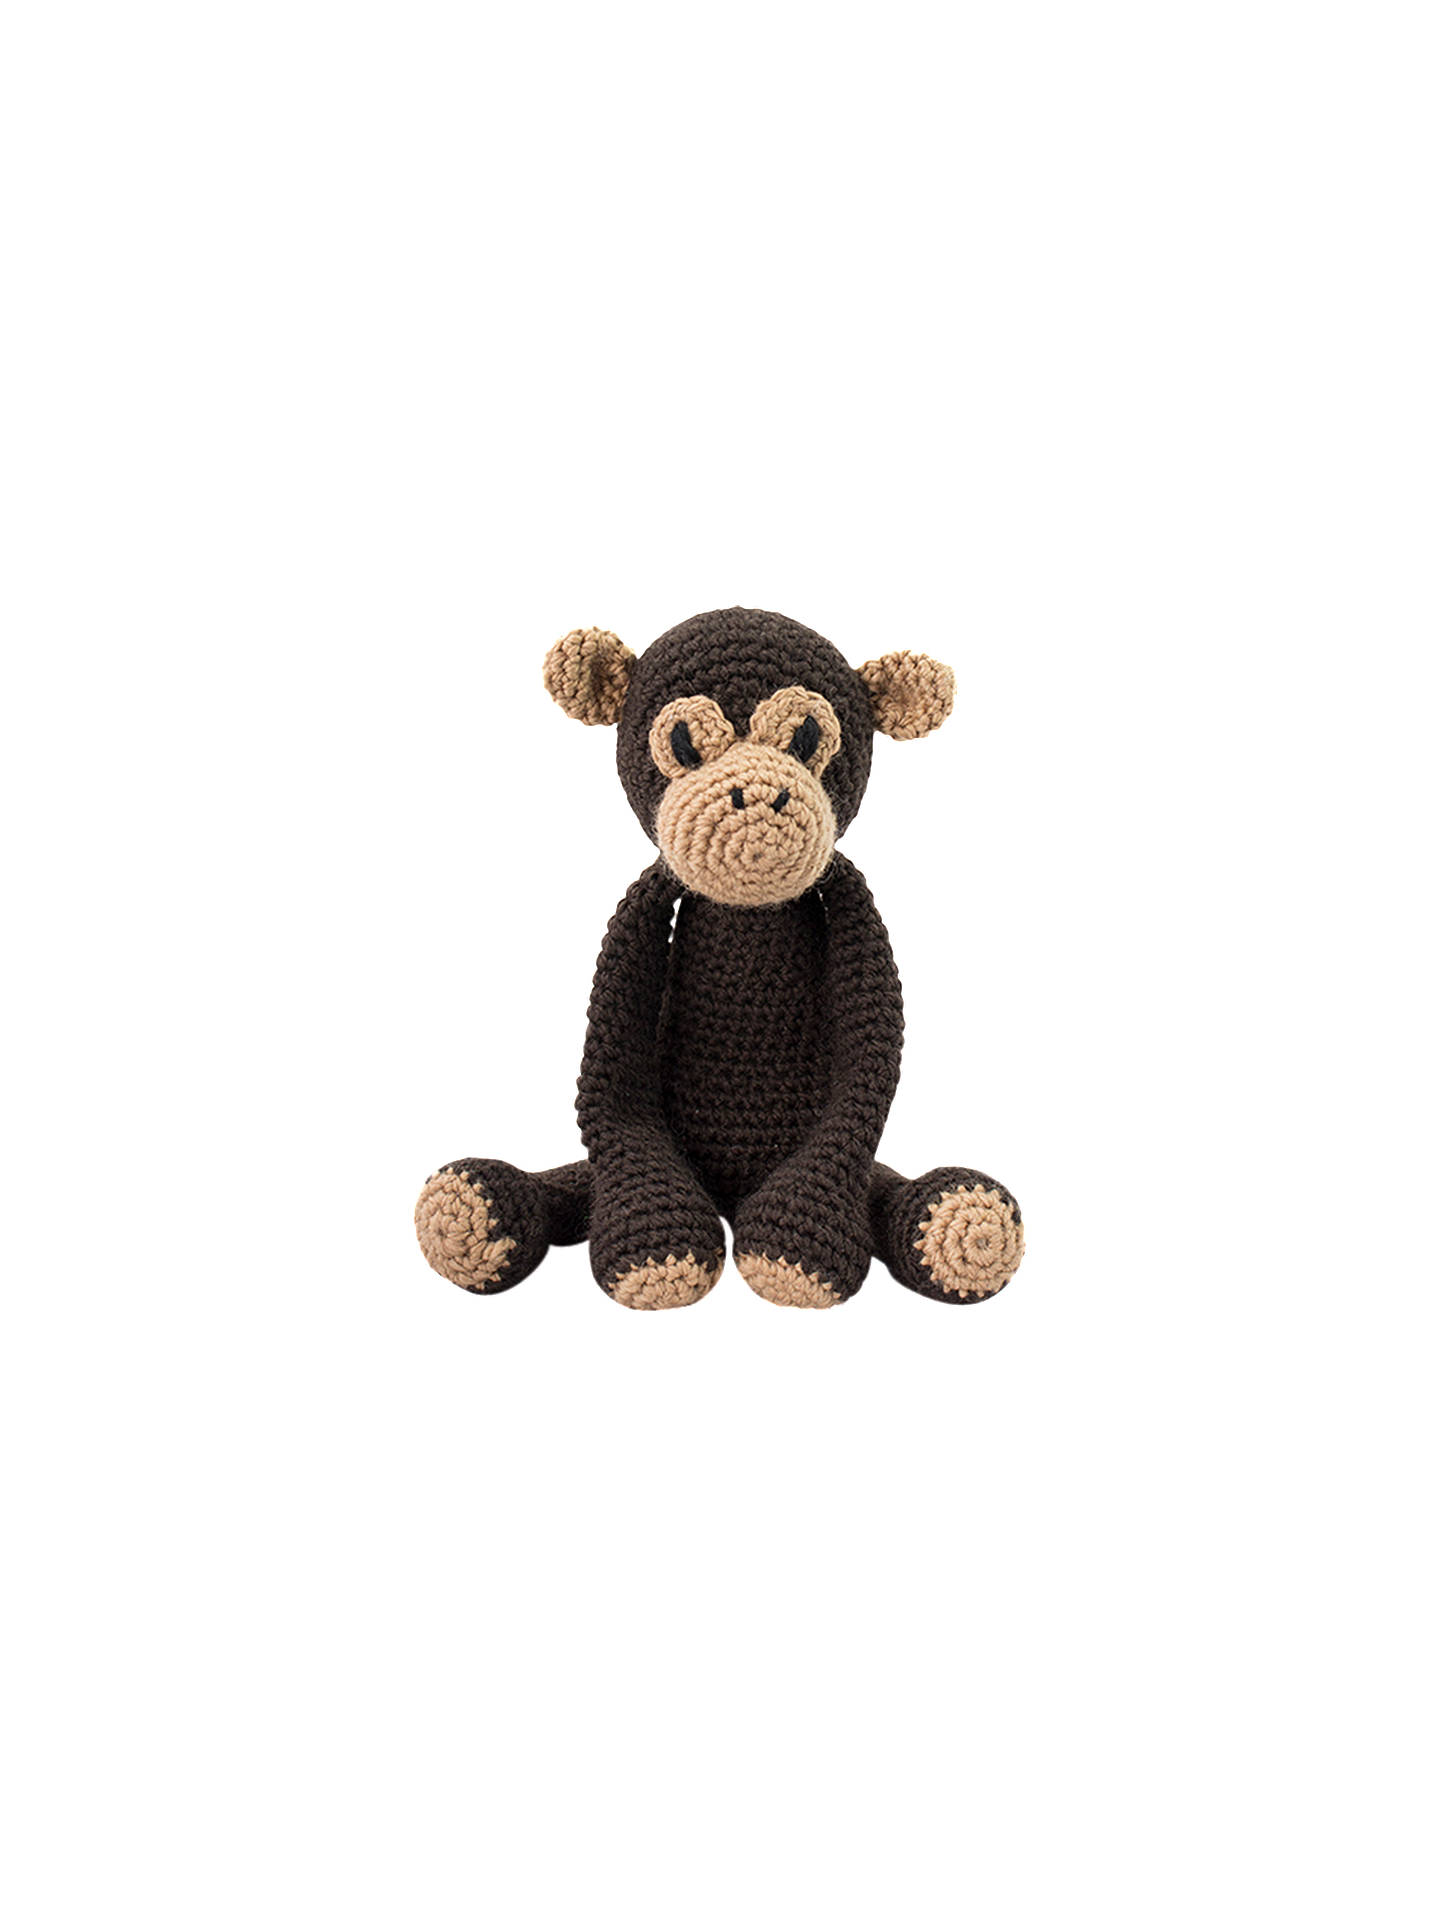 BuyToft Benedict The Chimpanzee Crochet Kit Online at johnlewis.com